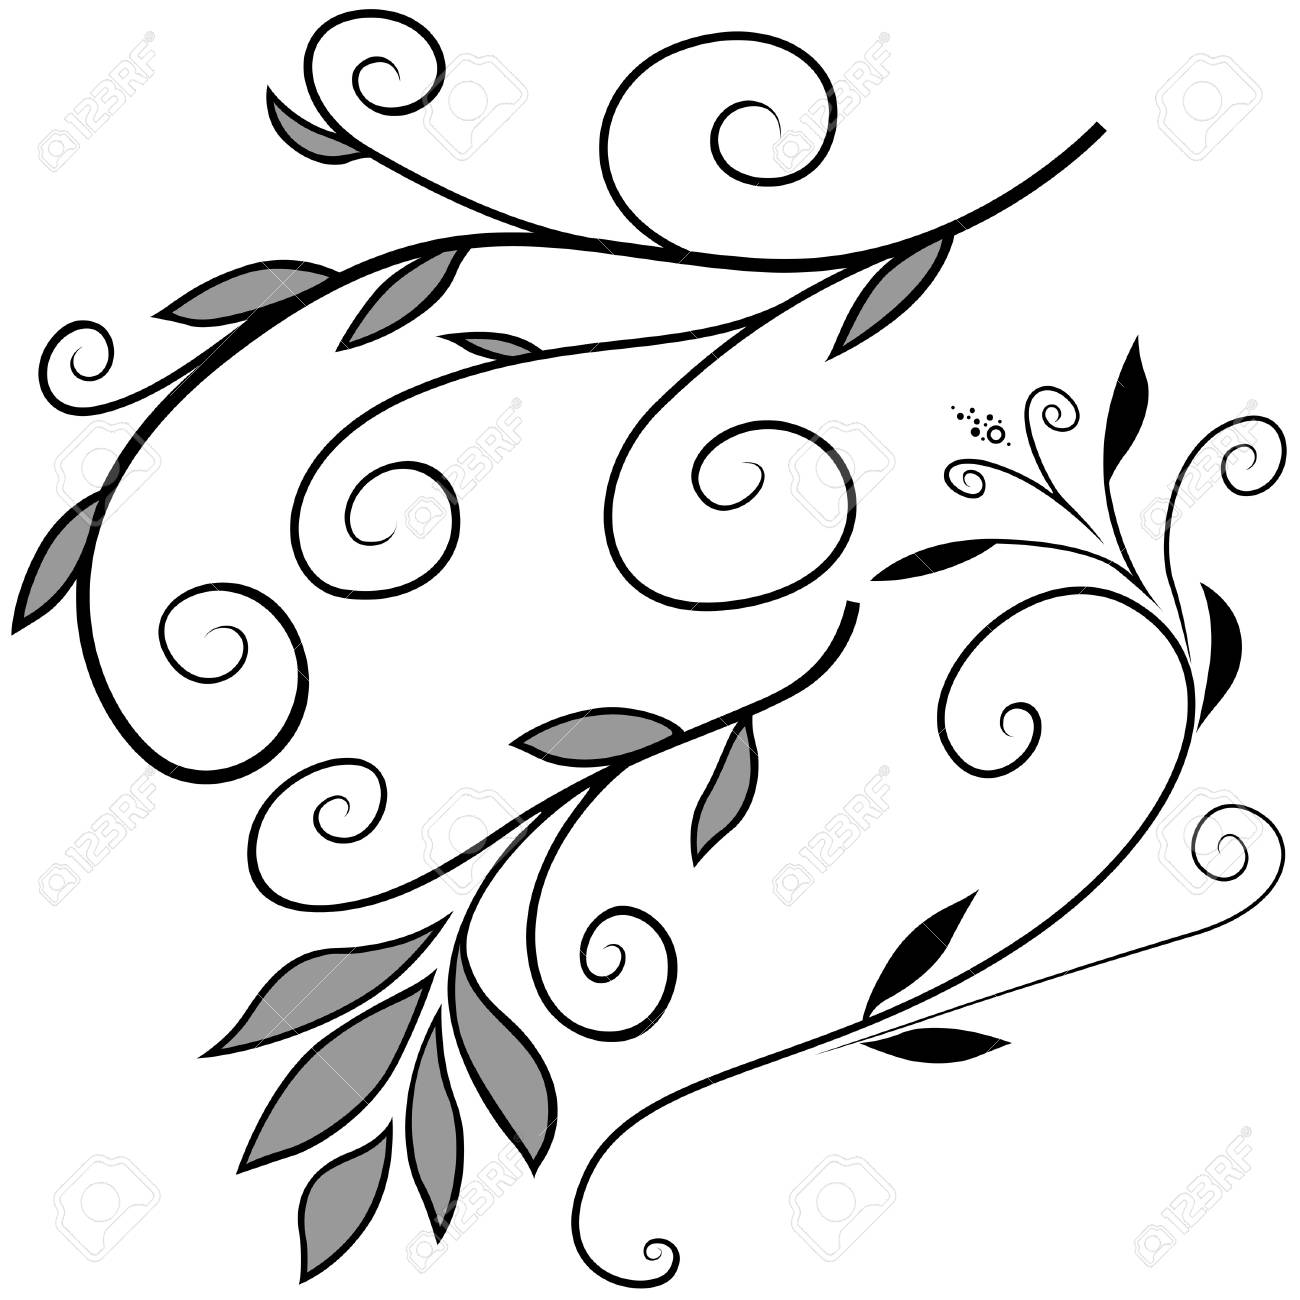 Floral elements F - popular floral segments as vector Stock Vector - 3121169